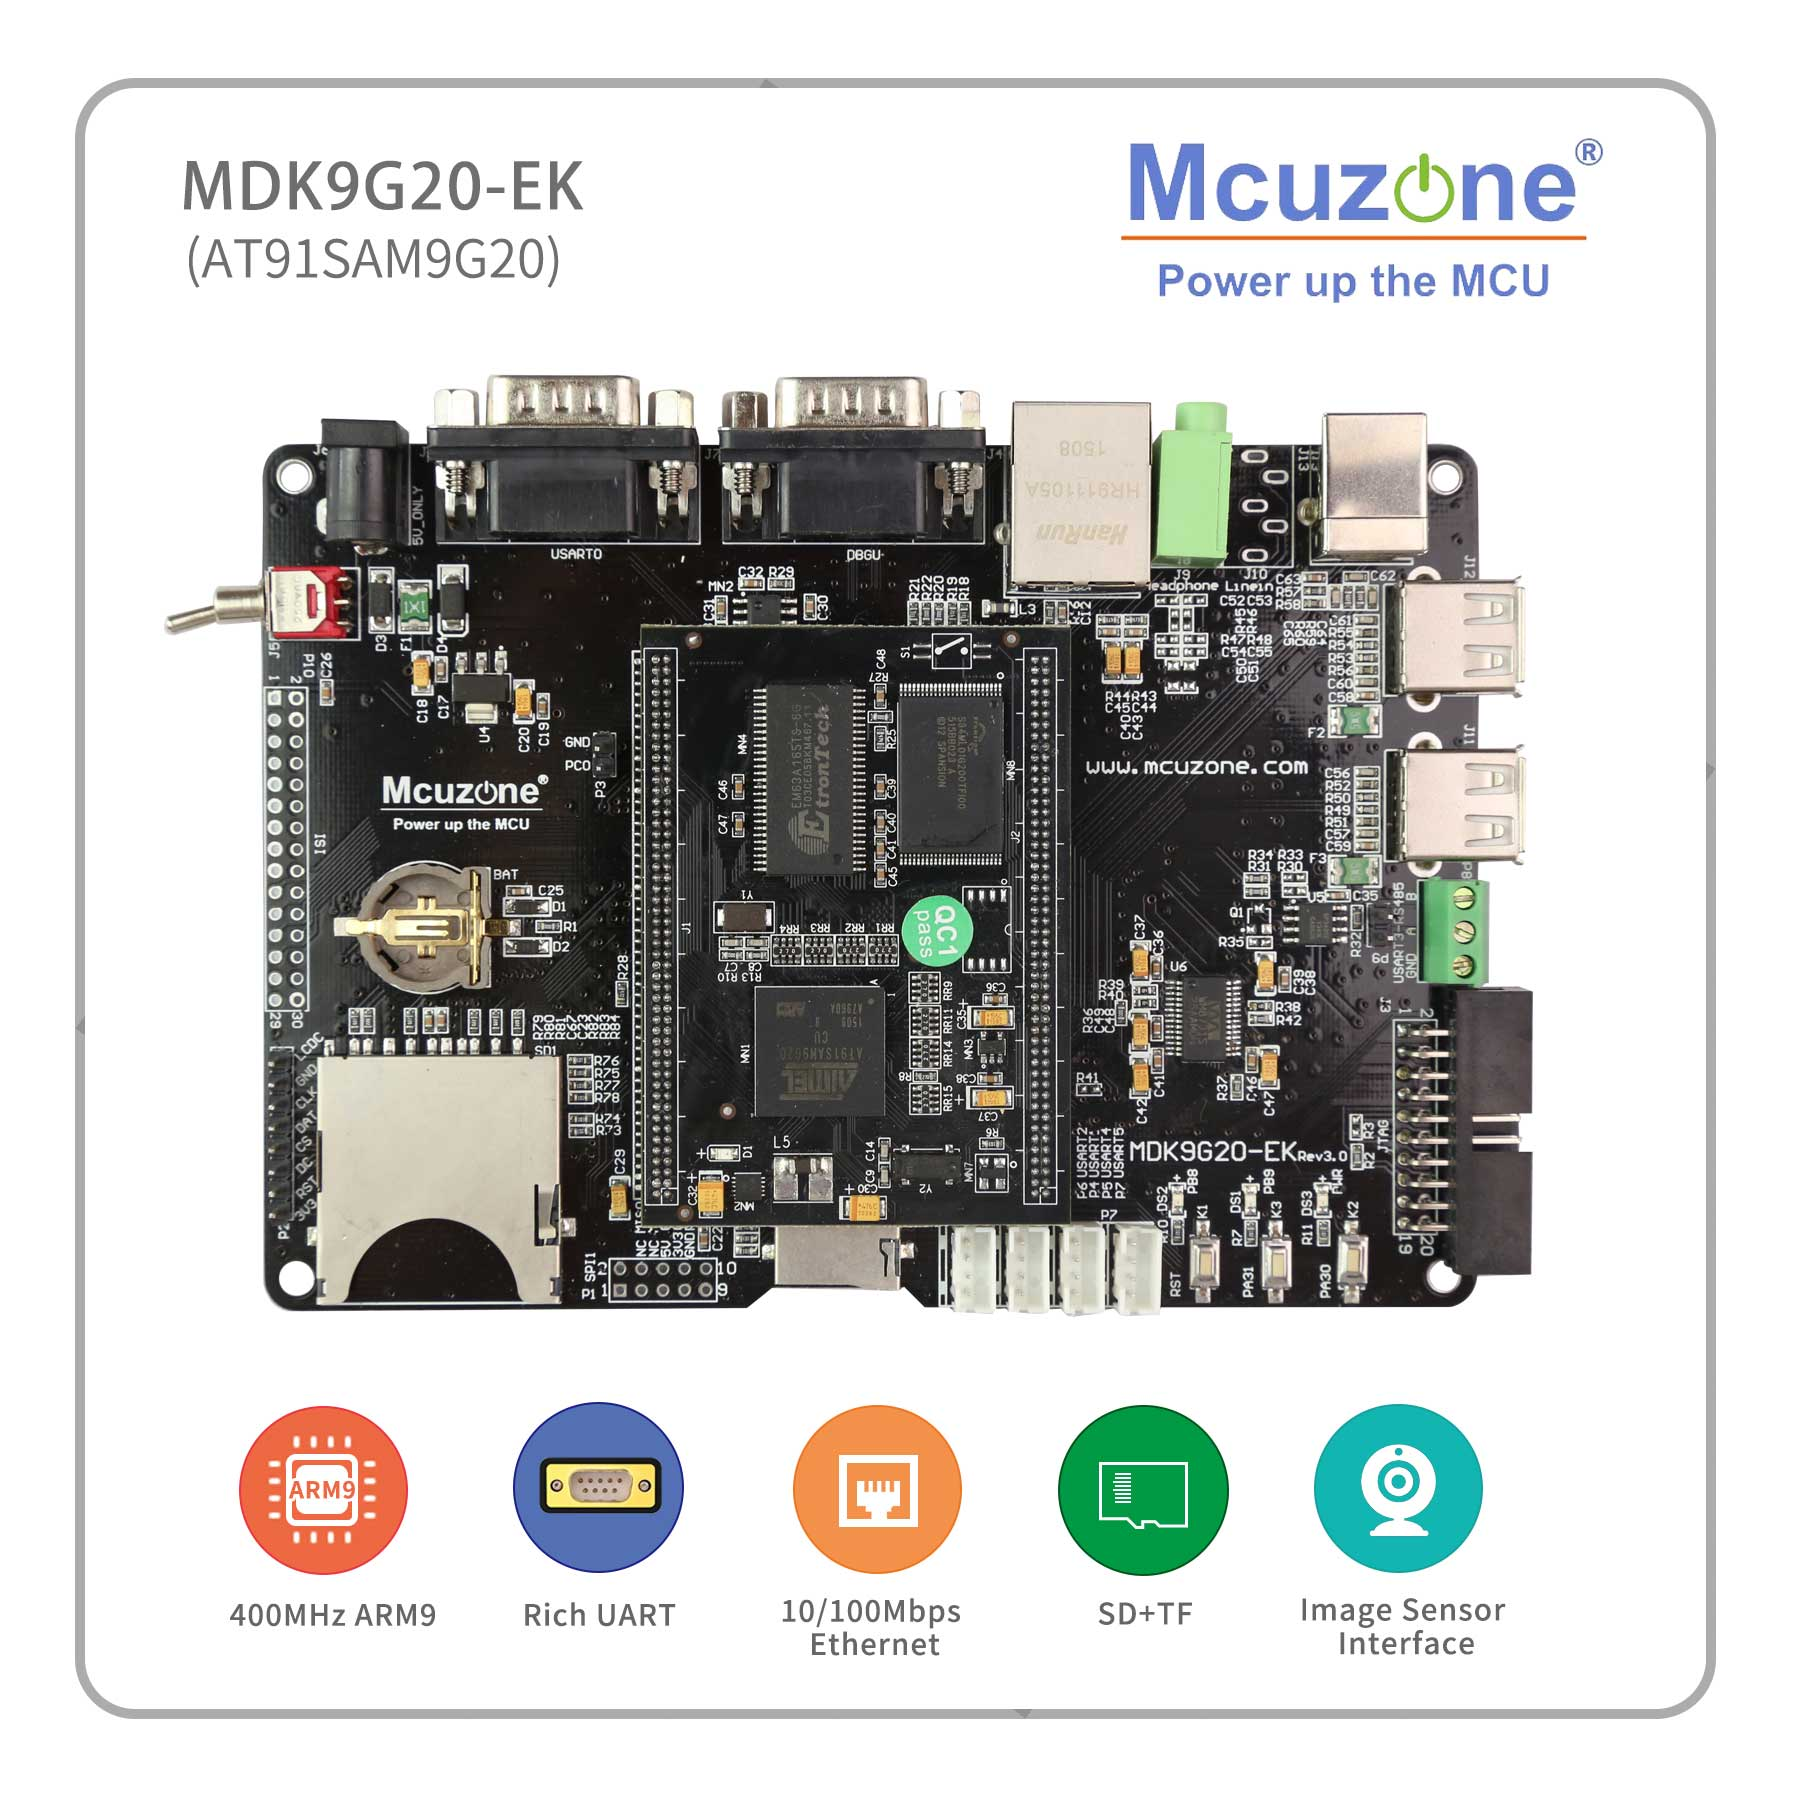 MDK9G20-EK AT91SAM9G20 ARM9 development kit ,ATMEL MCIROCHIP 400MHz sam9g20 9G20 Remote Controlle free shipping IoT GateWay